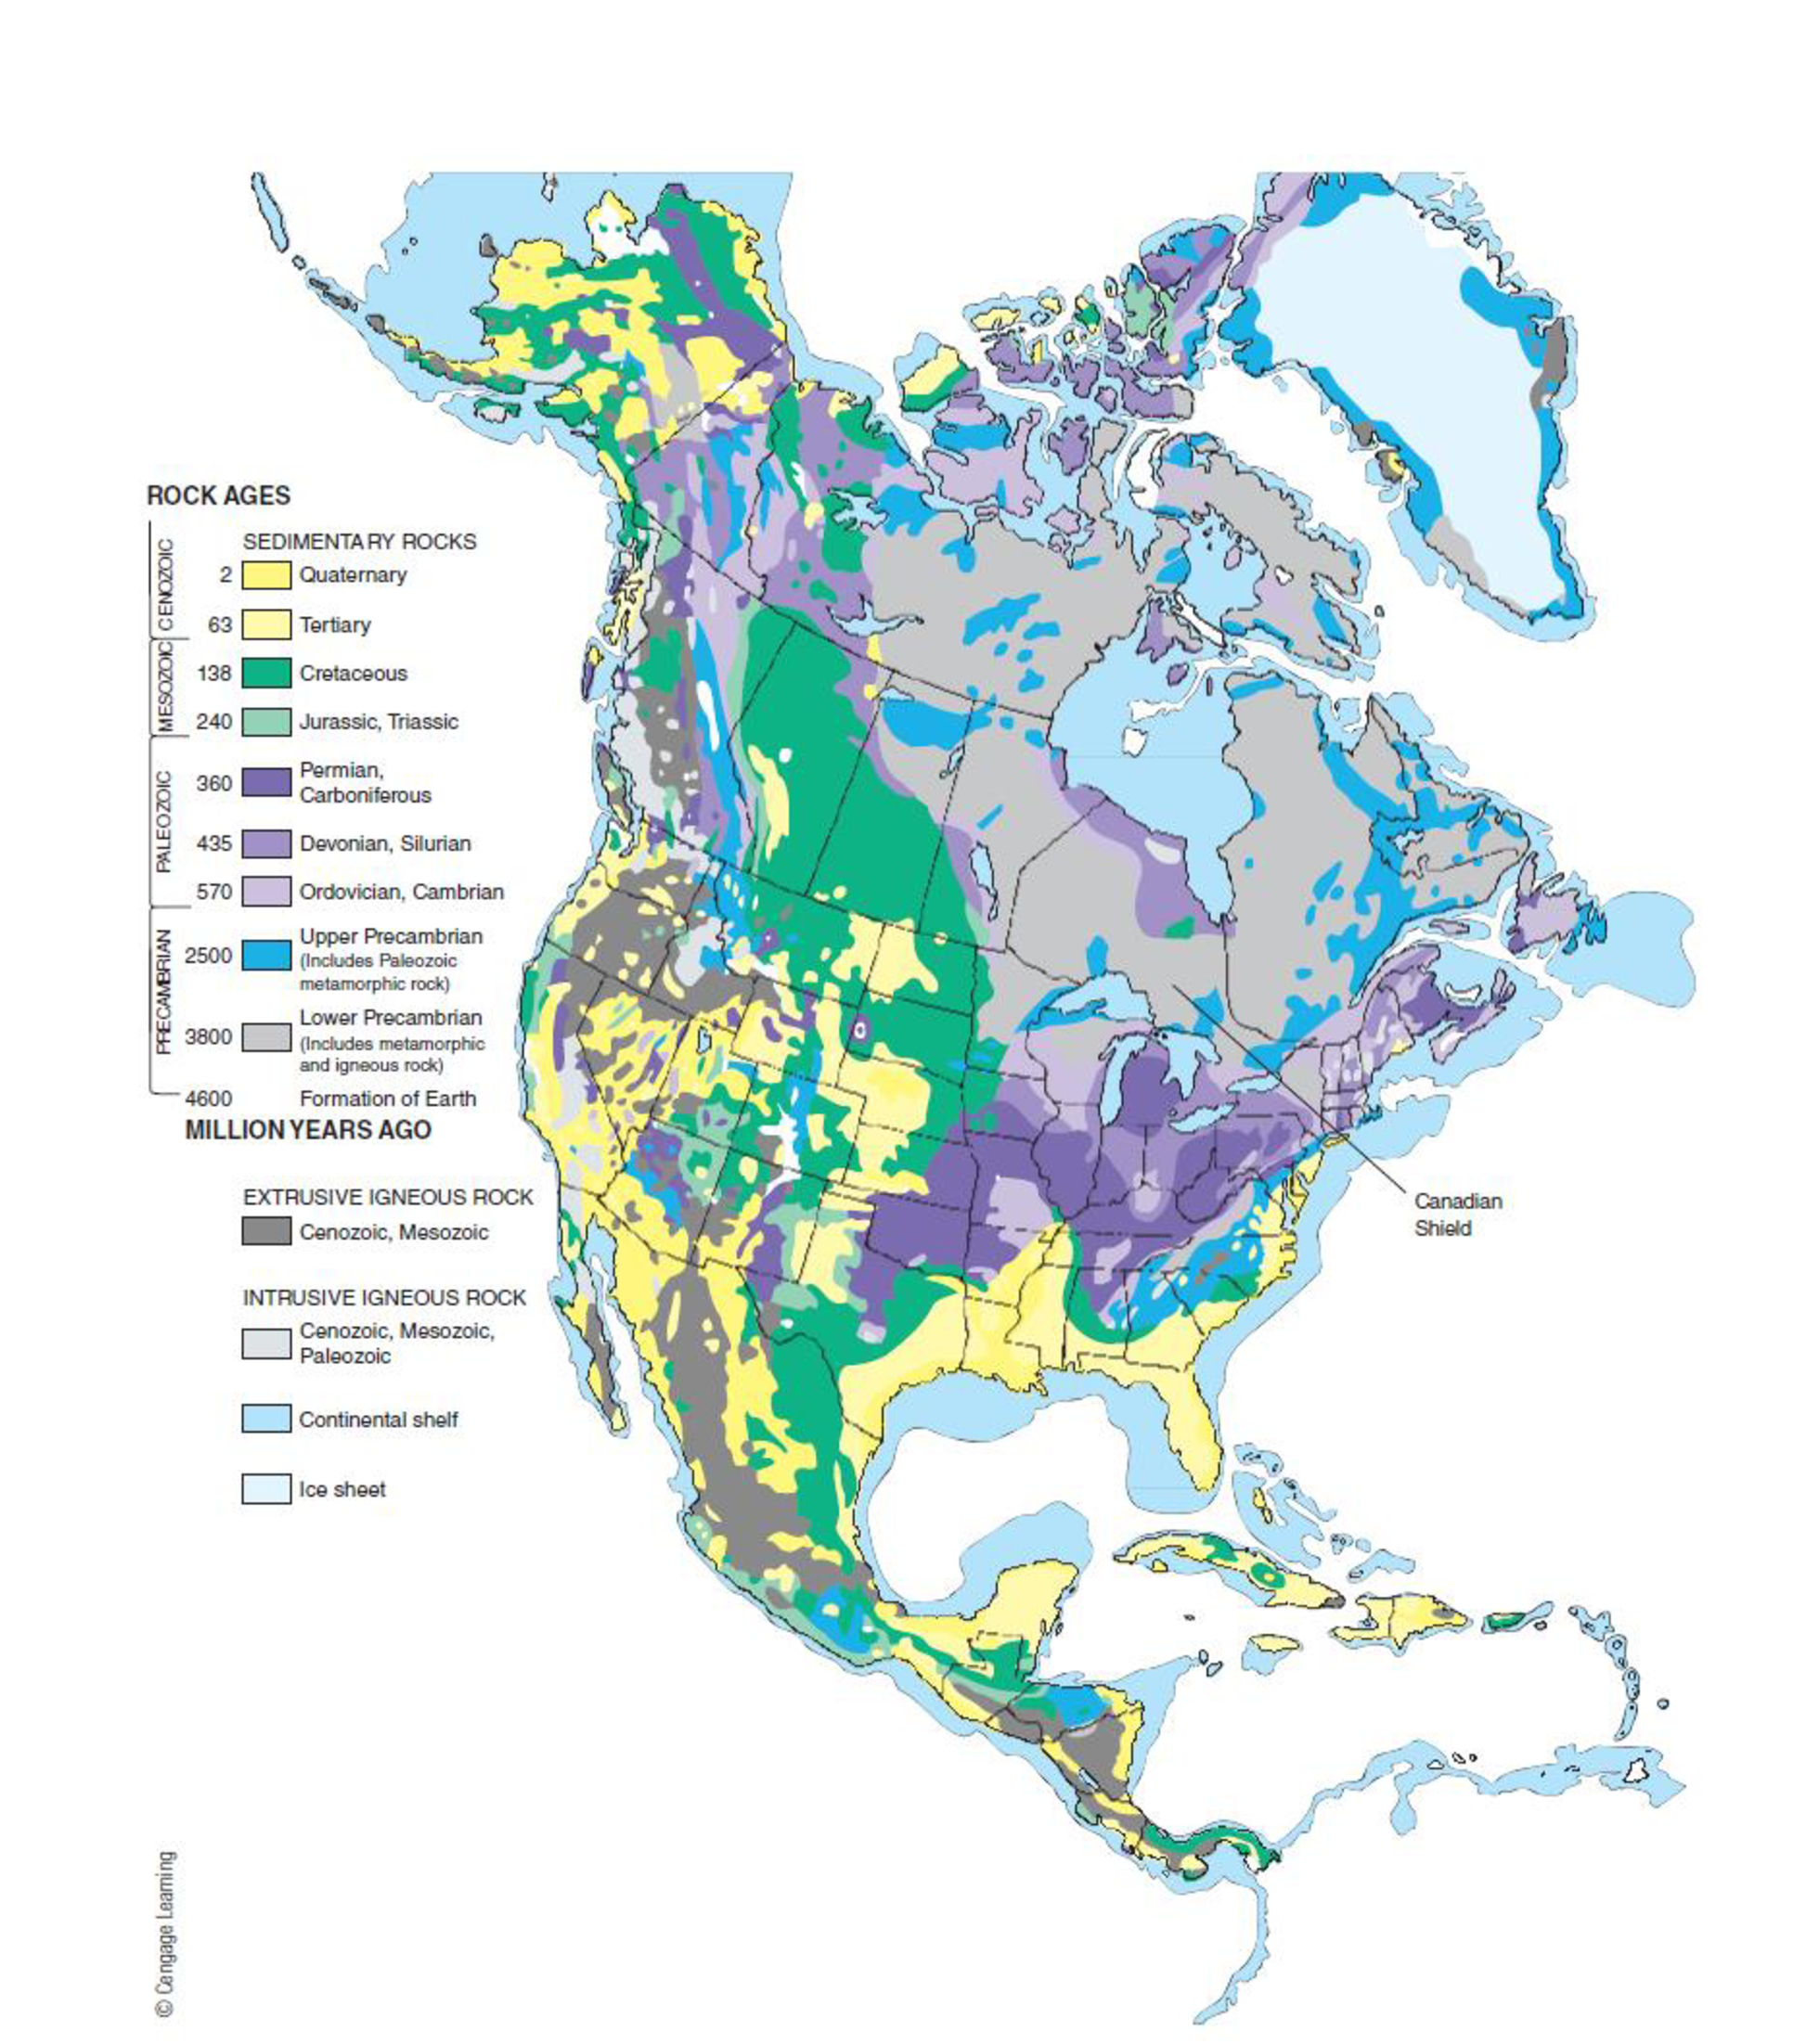 Chapter 10, Problem 33FQ, FIGURE 10.33 Map of North America showing the continental shield (Canadian shield) and the general